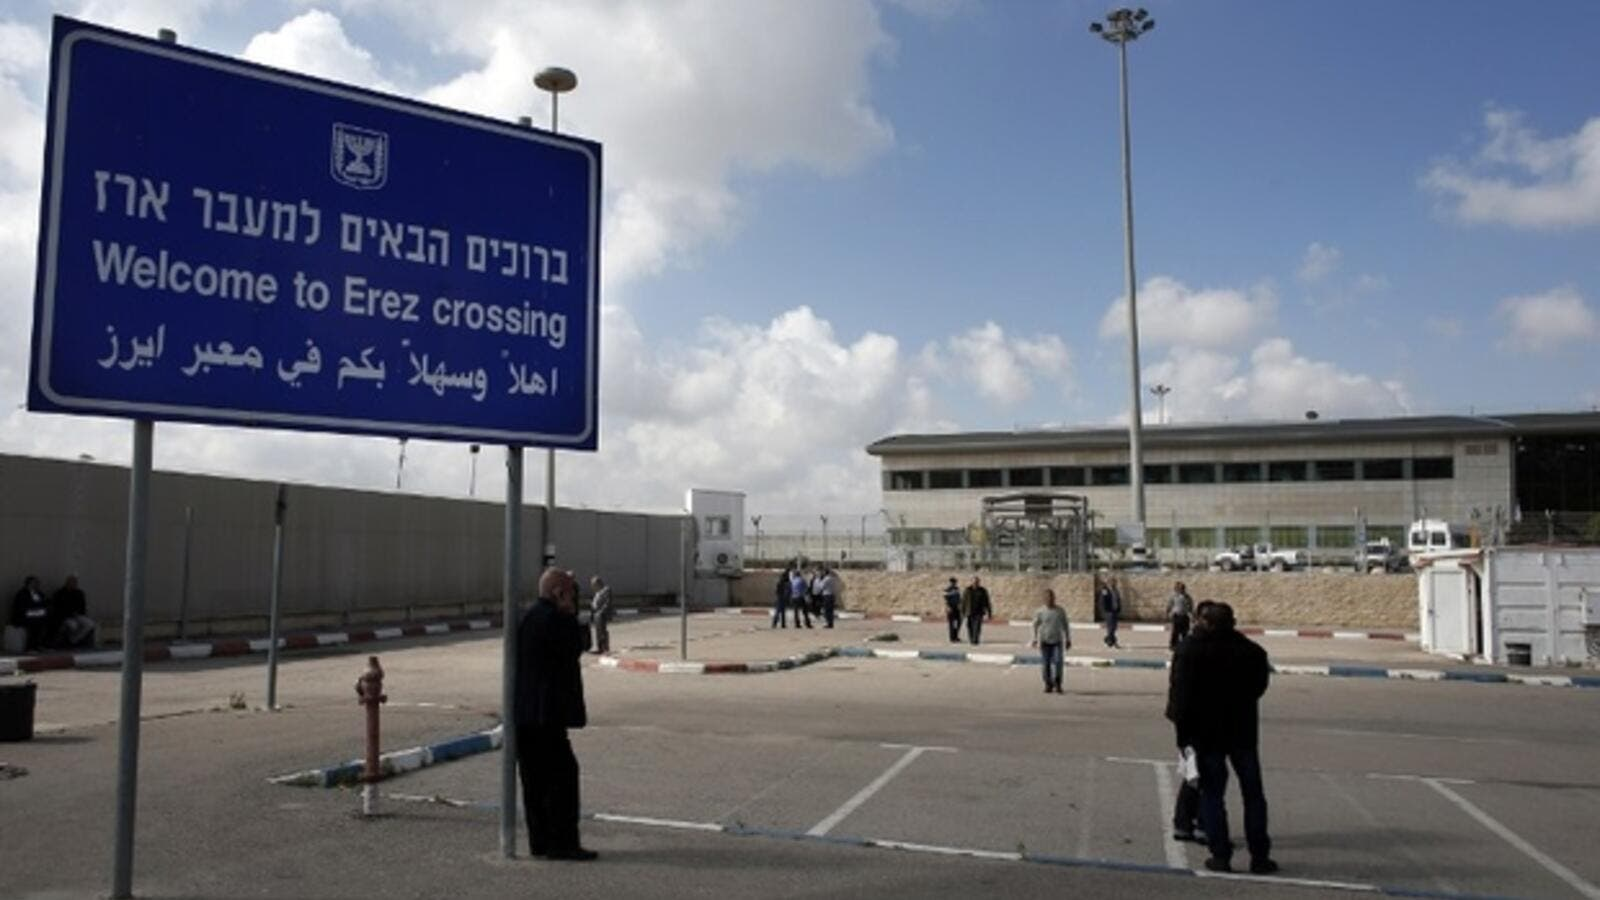 The Erez border crossing. (AFP/File)